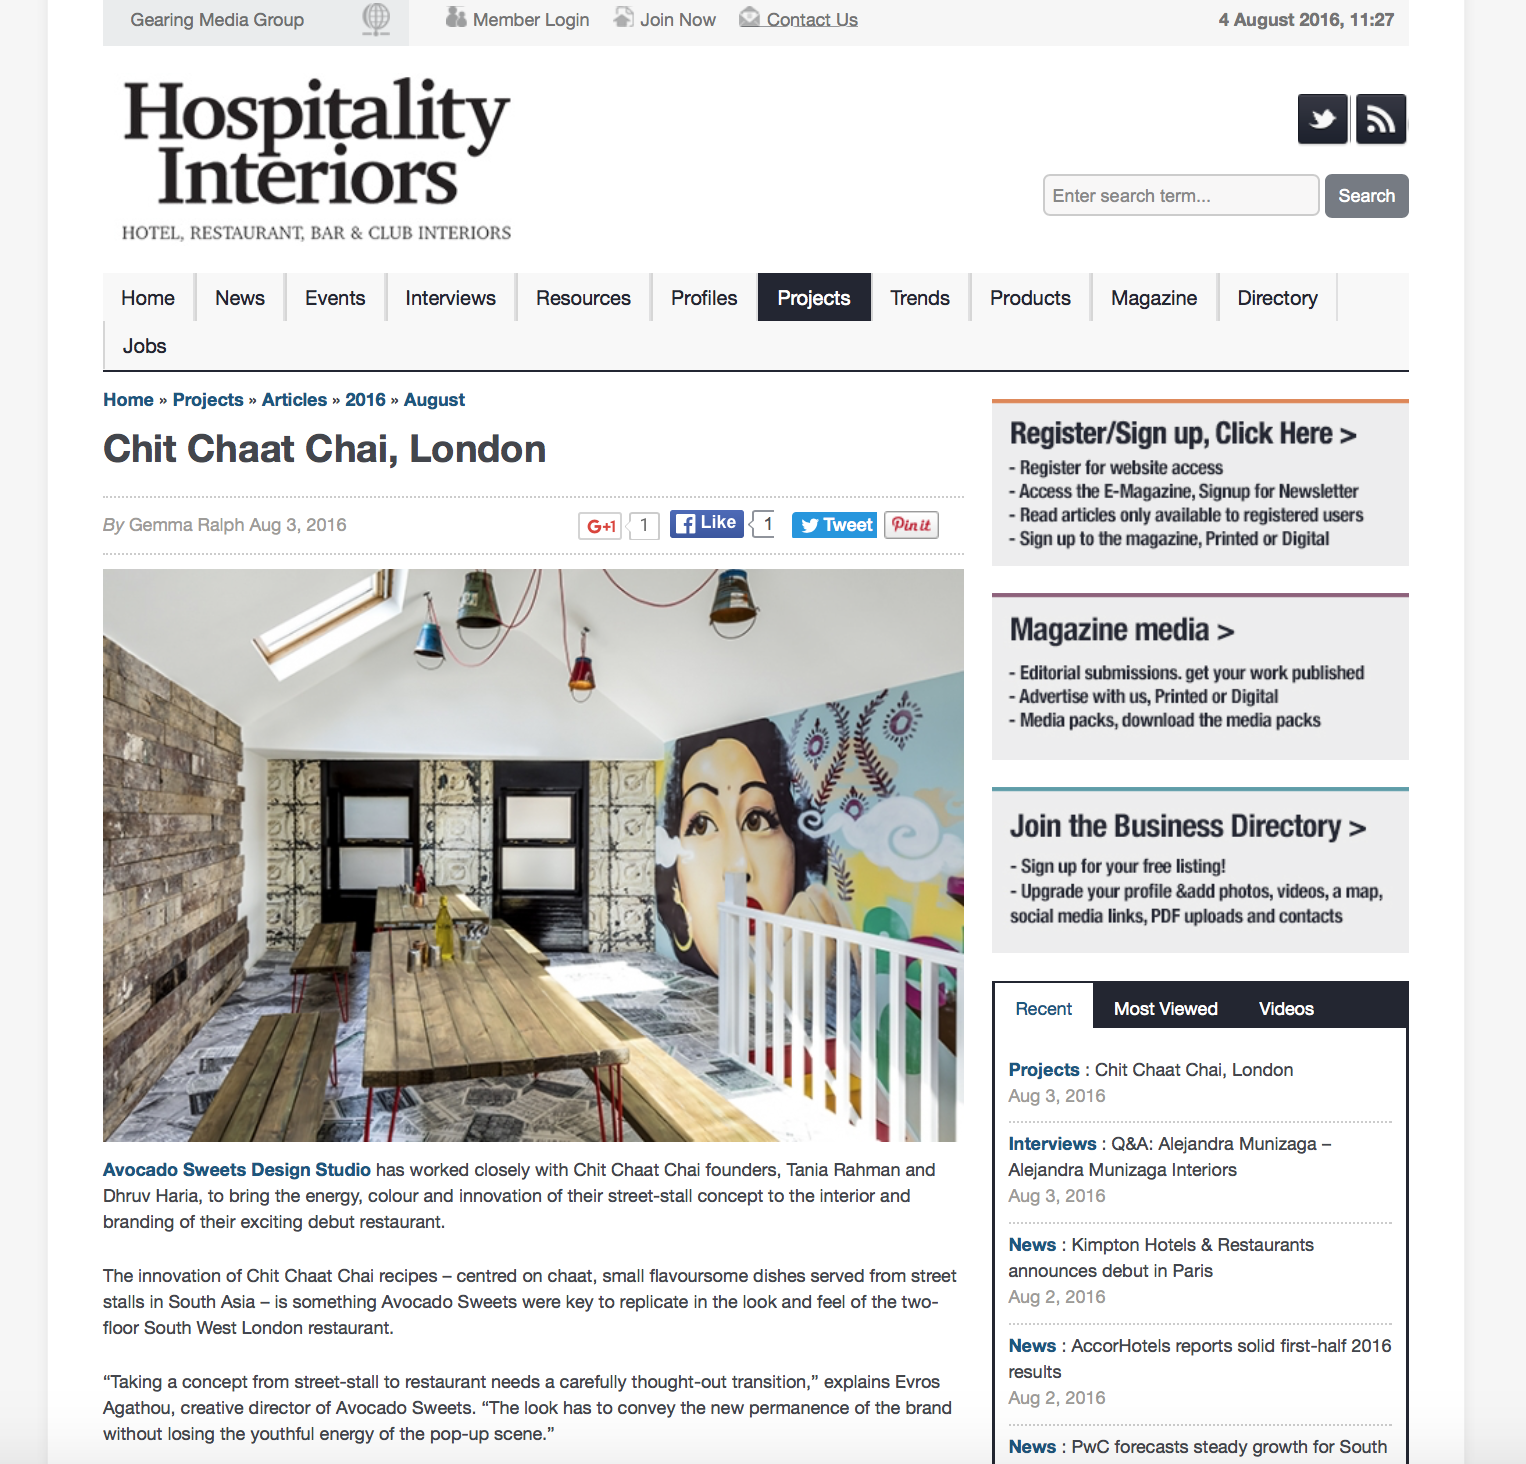 Hospitality Interiors feature on the Chit Chaat Chai design by Avocado Sweets.